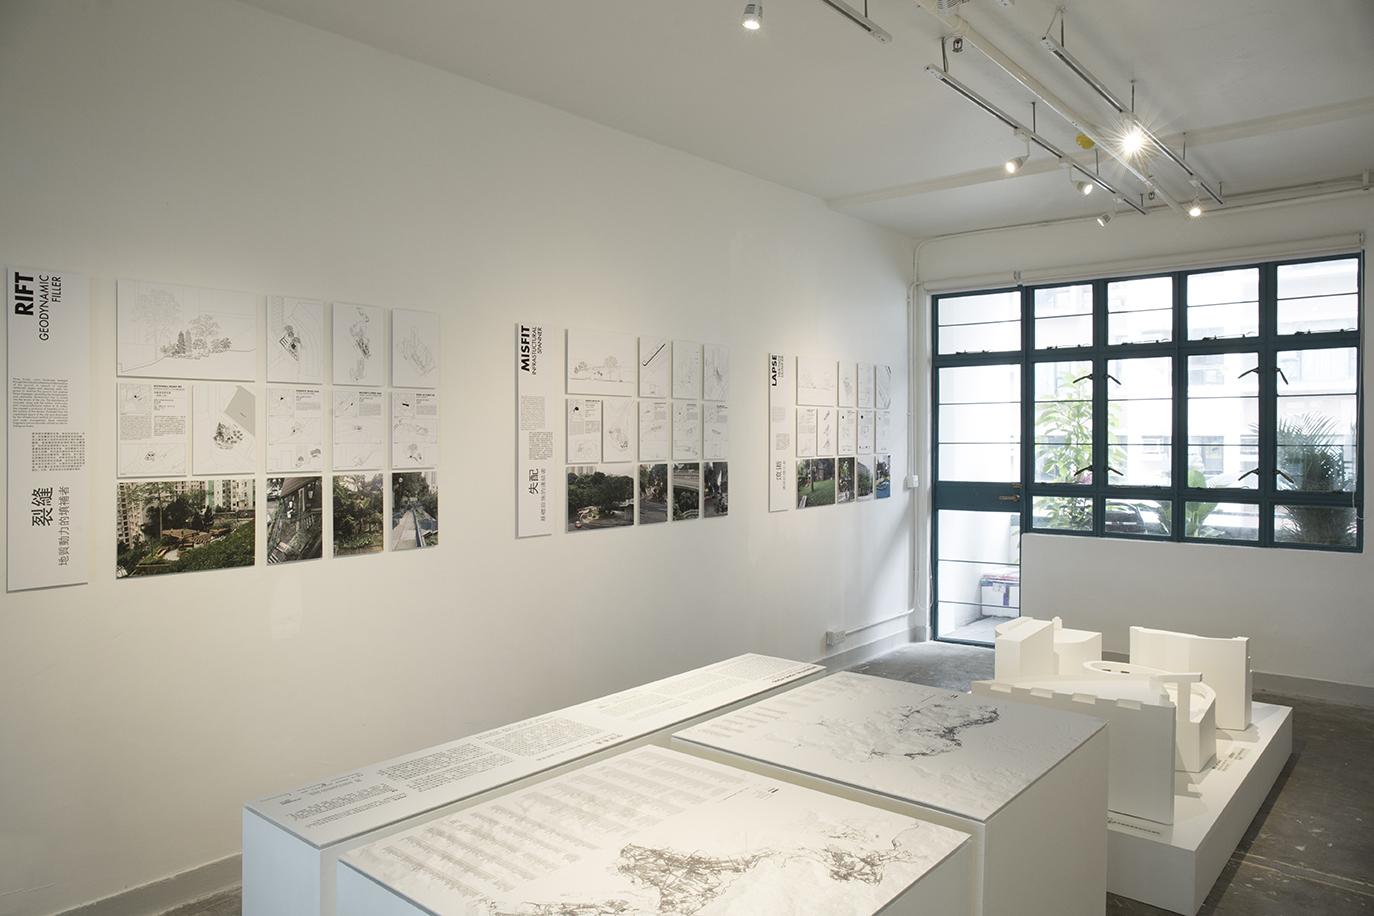 INTERSTITIAL HONG KONG: exhibition at PMQ